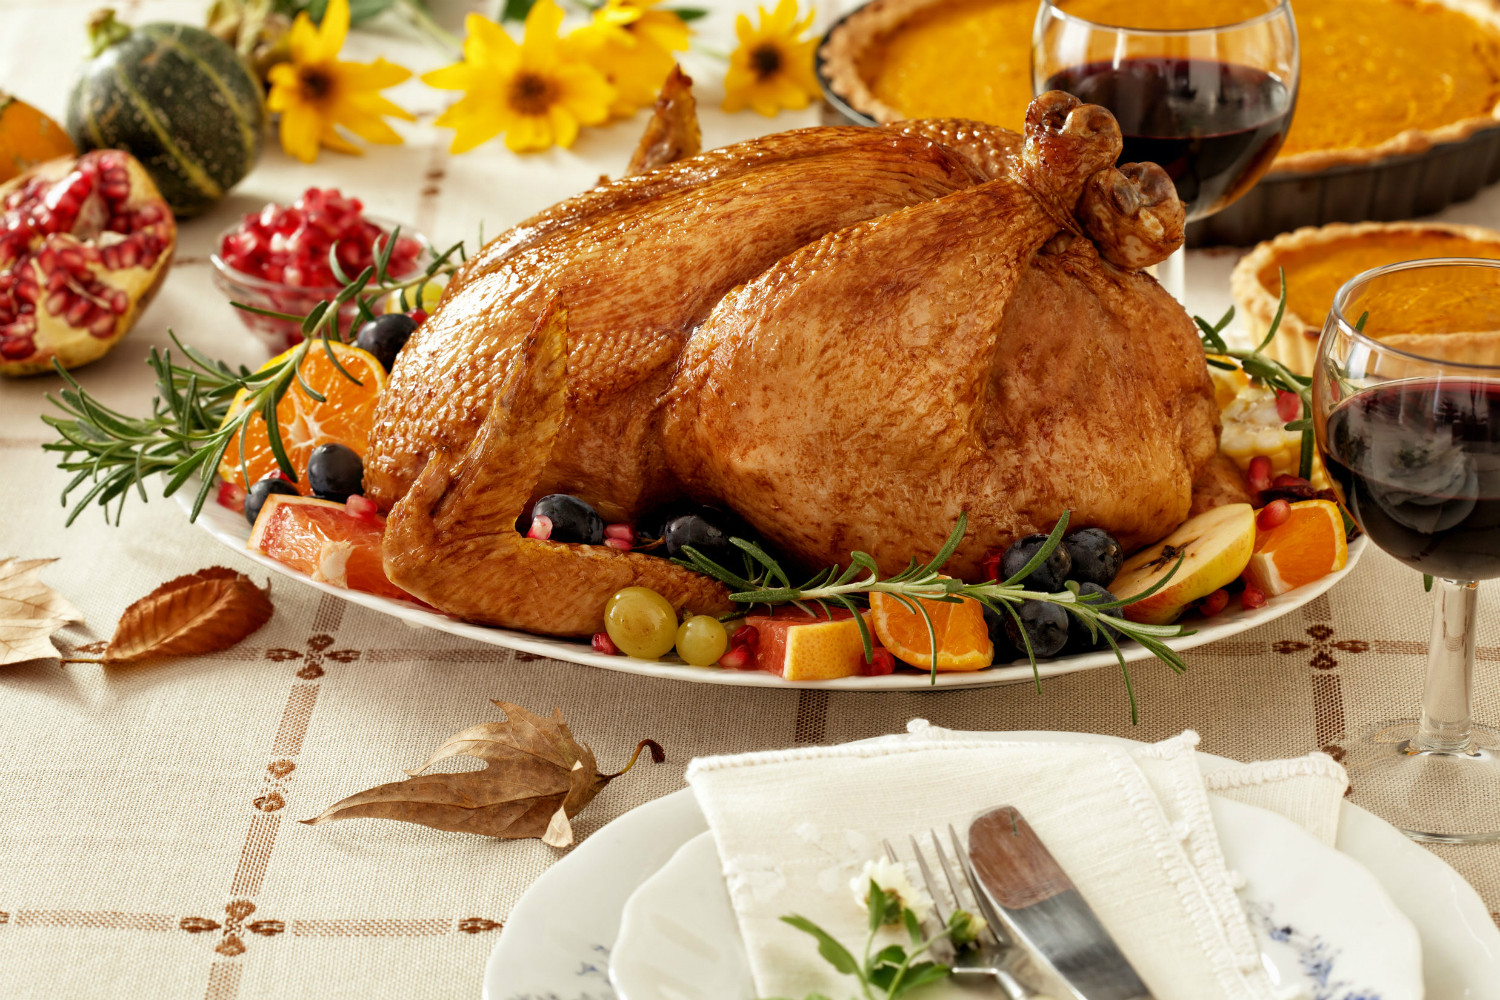 Thanksgiving Dinner Without Turkey  Food production startup promises meat without murder by